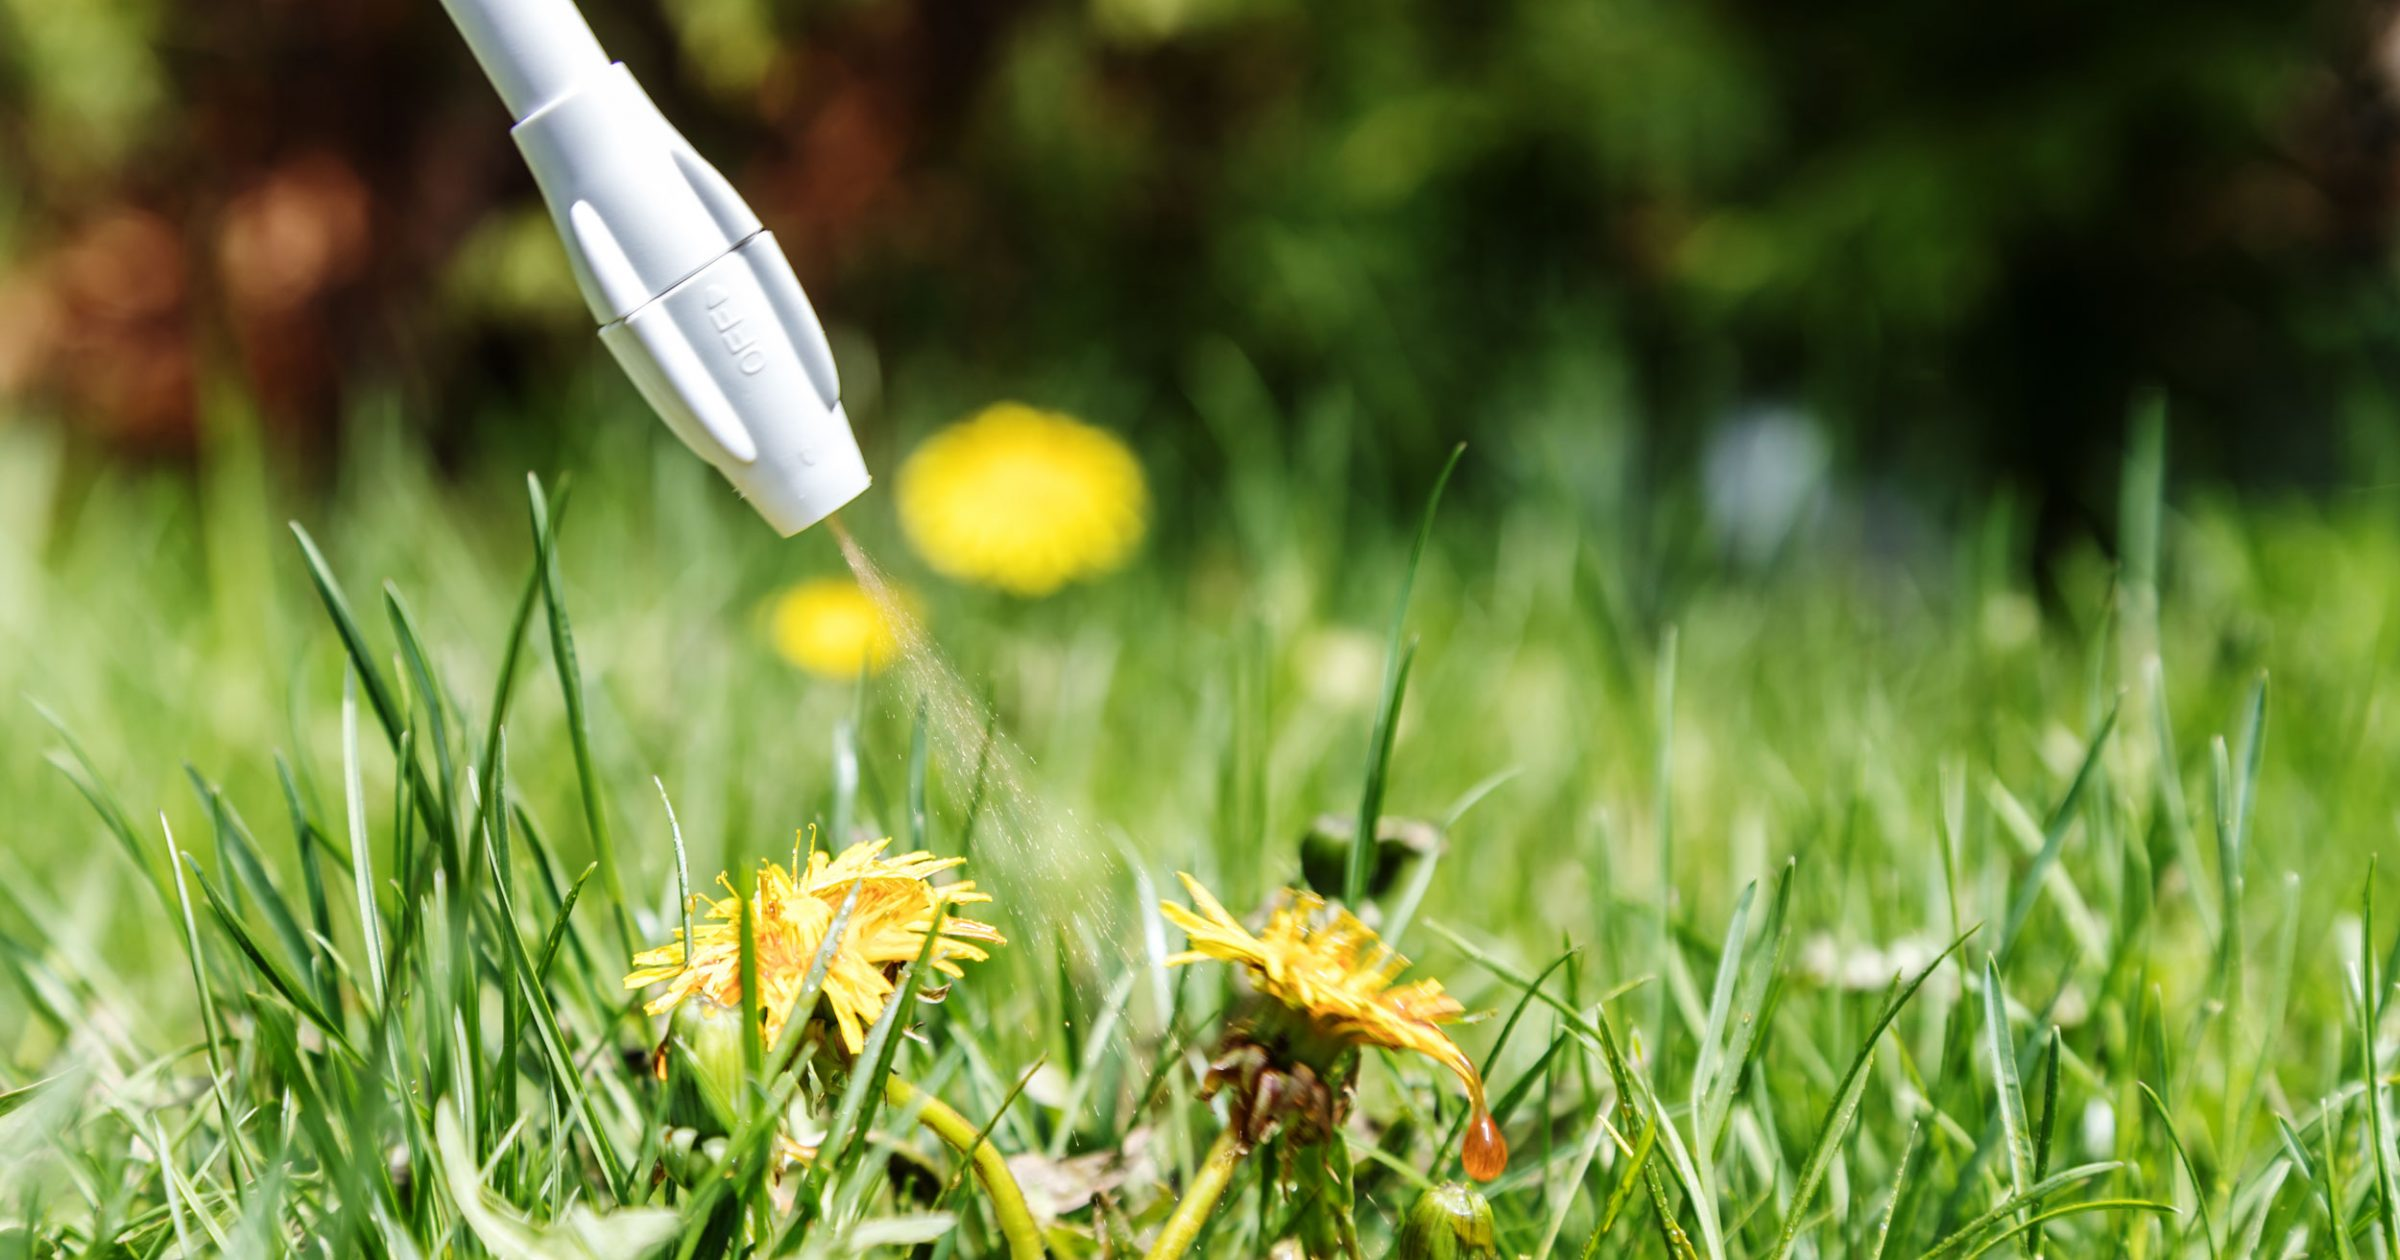 The Most Common Lawn Weeds